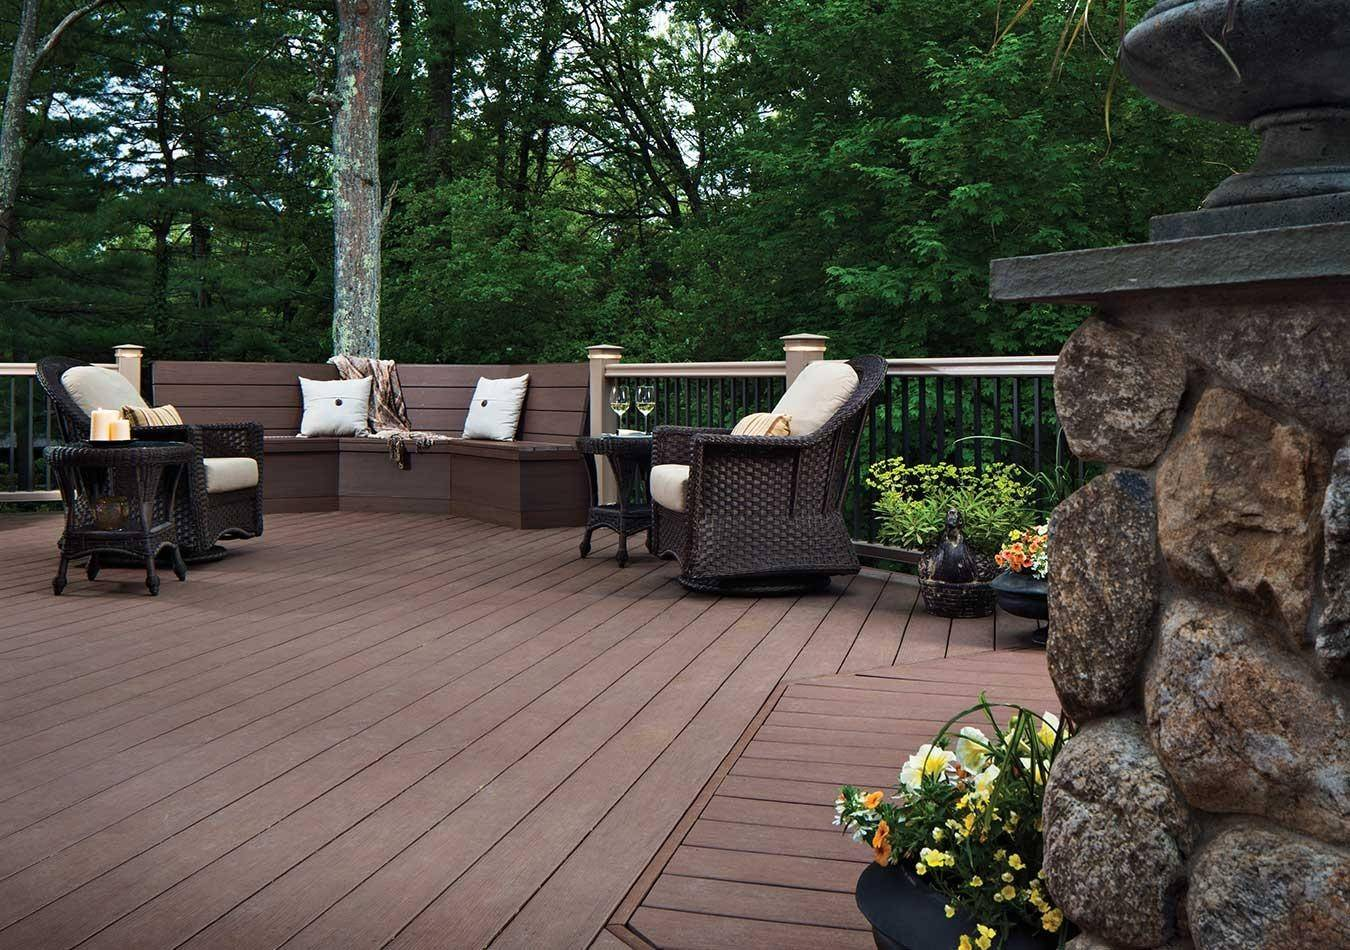 Pictures of beautiful backyard decks and patio